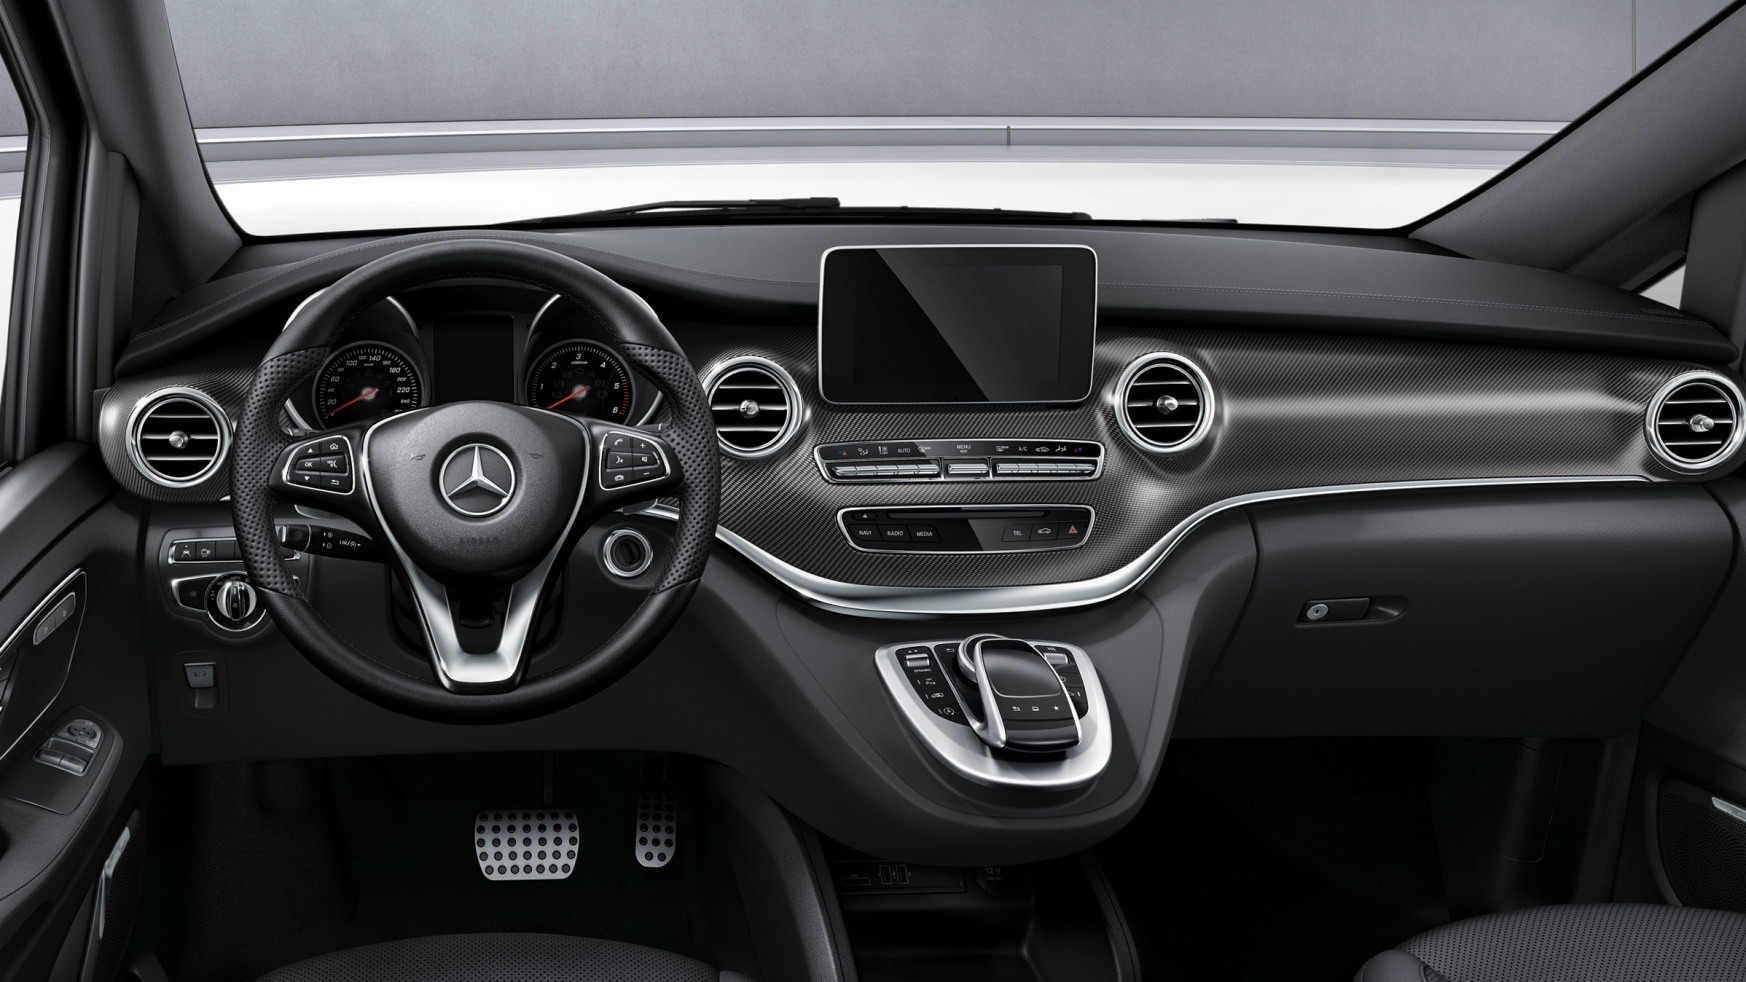 V-Class, Features, Equipment, AMG Line, Interior, Cockpit space, Sporty